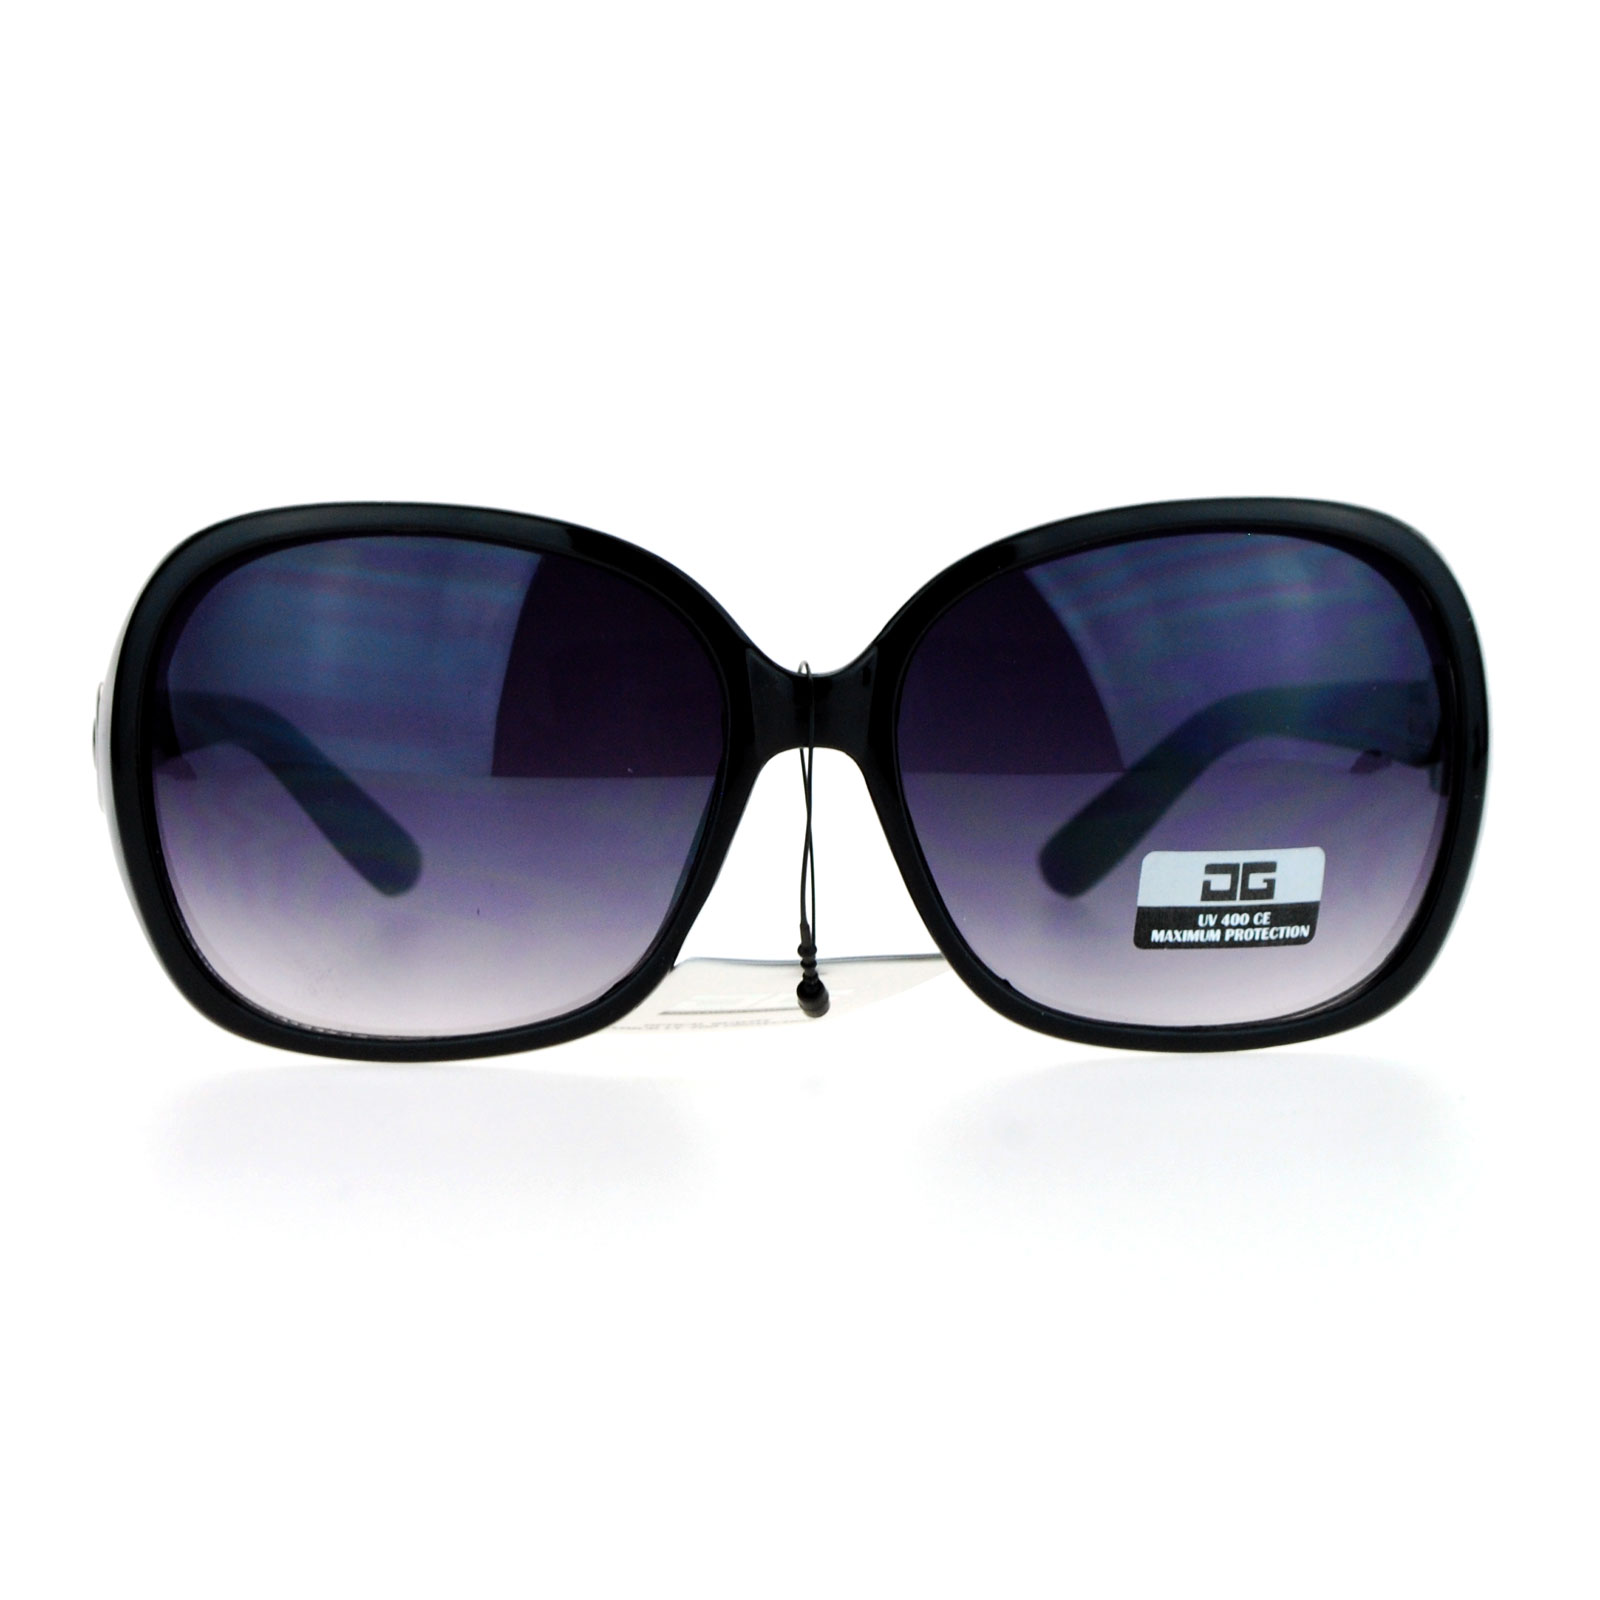 are ray bans uv protected